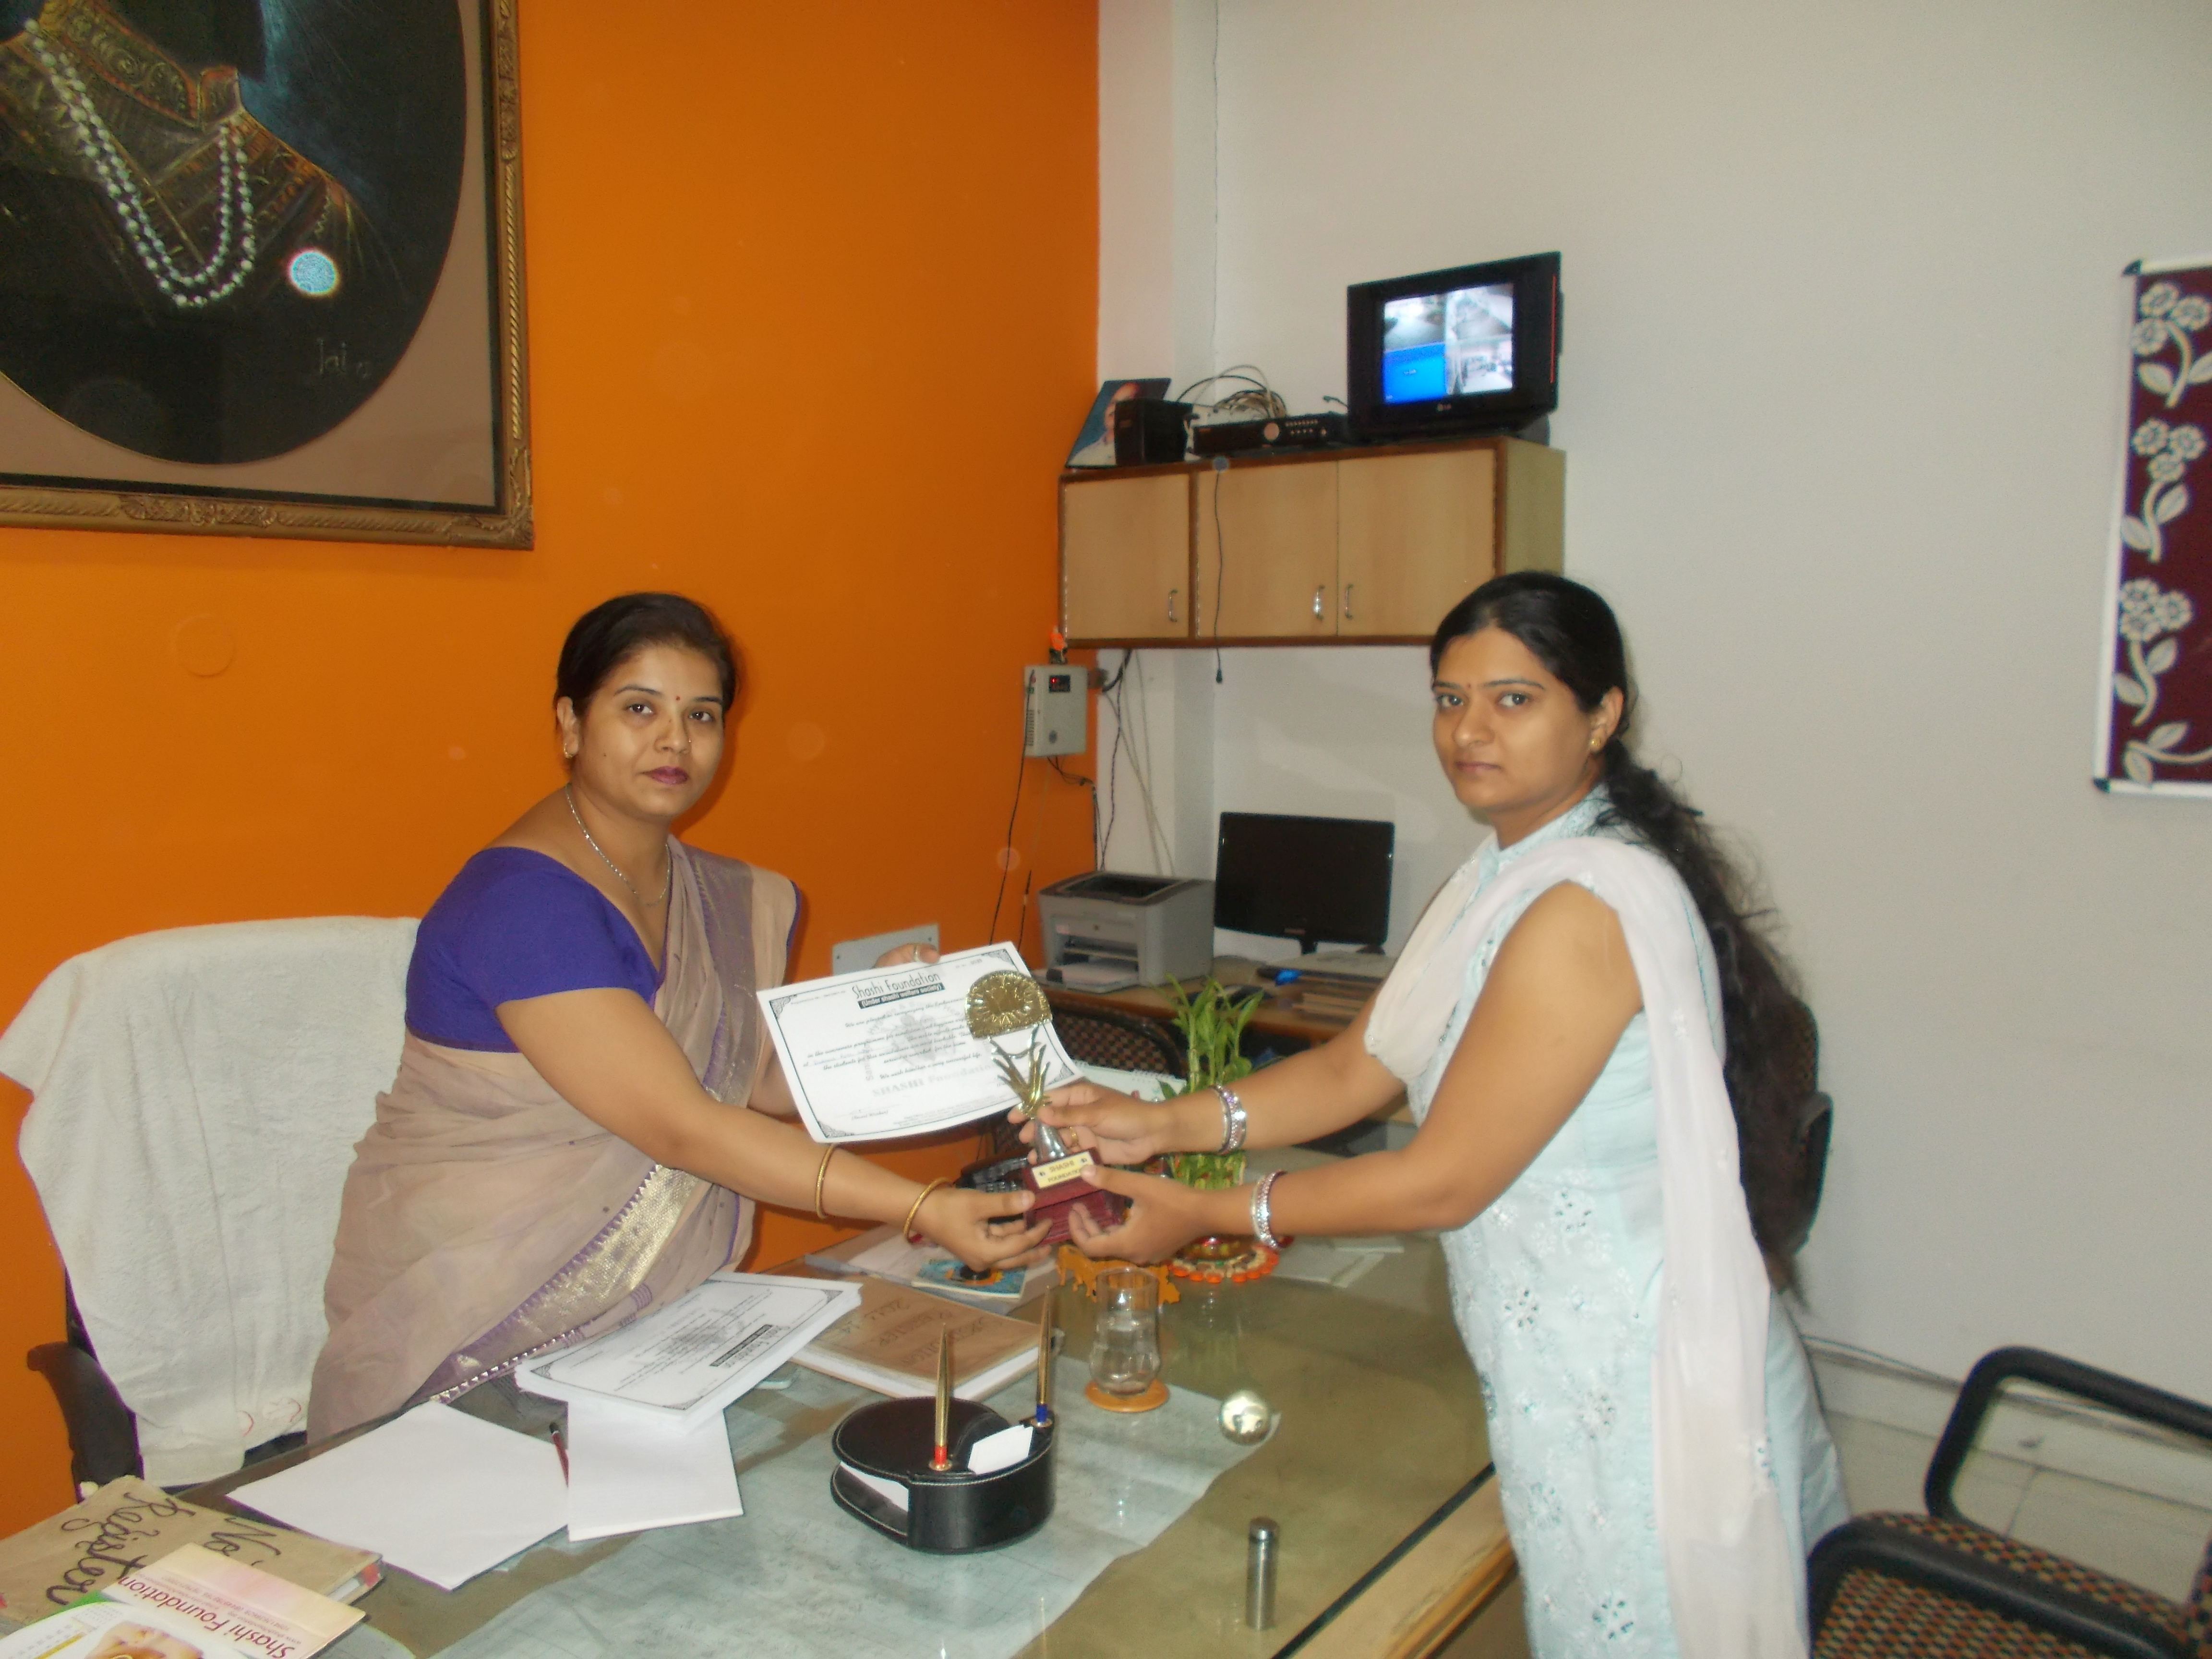 Shitika thanking the principal of school for her support in the awareness program held in her school